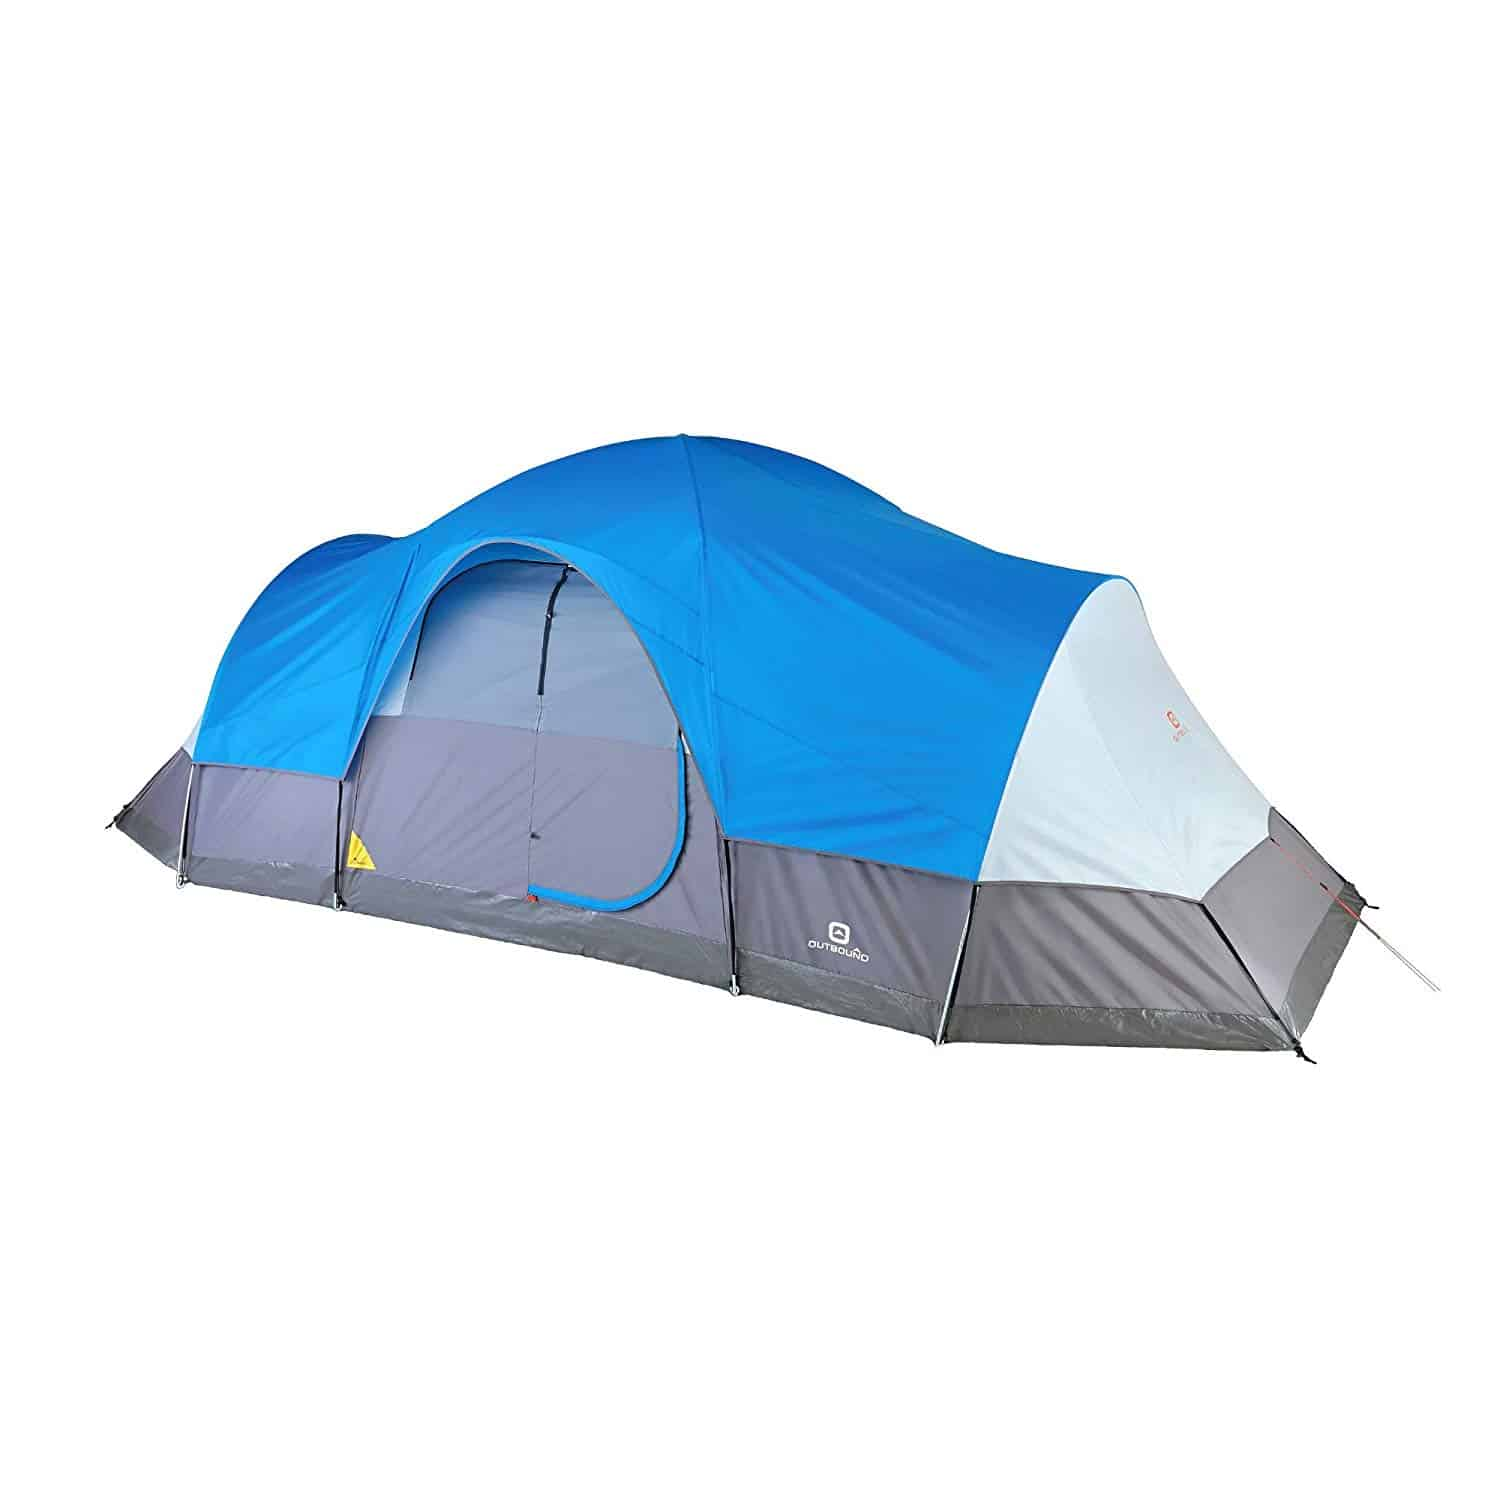 Outbound Dome Tent for Camping